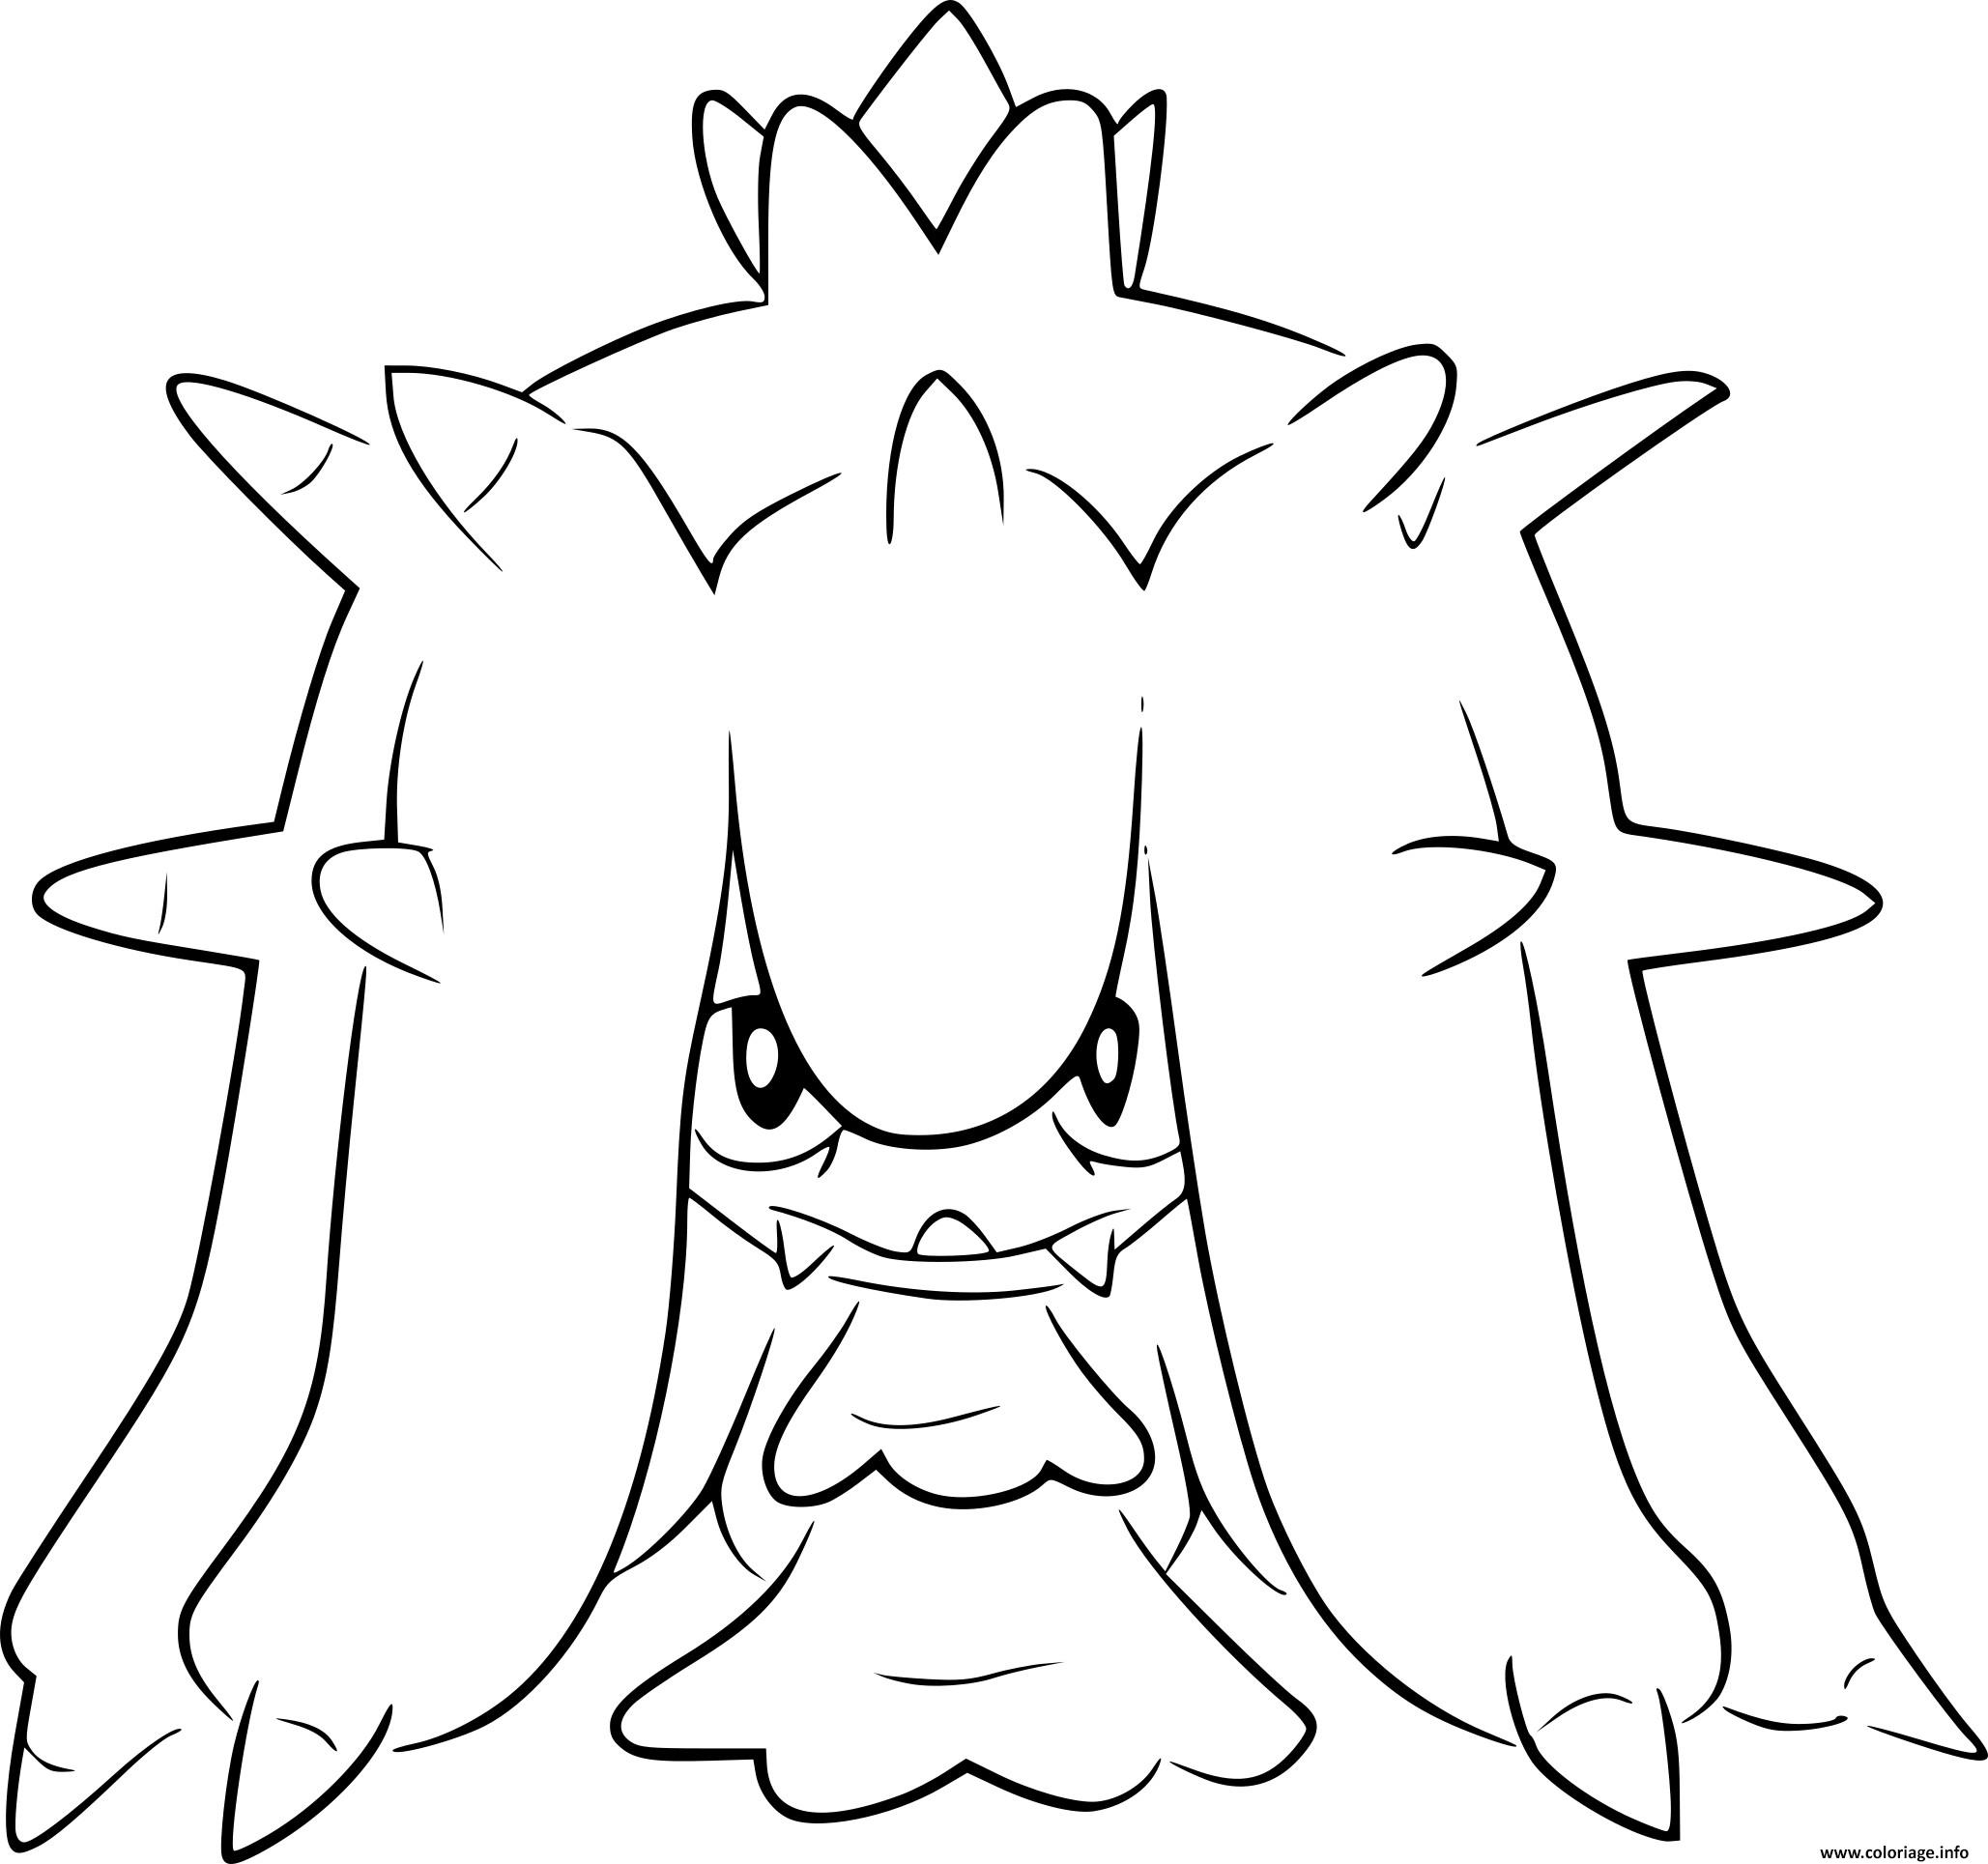 Luxe Dessin Coloriage De Pokemon